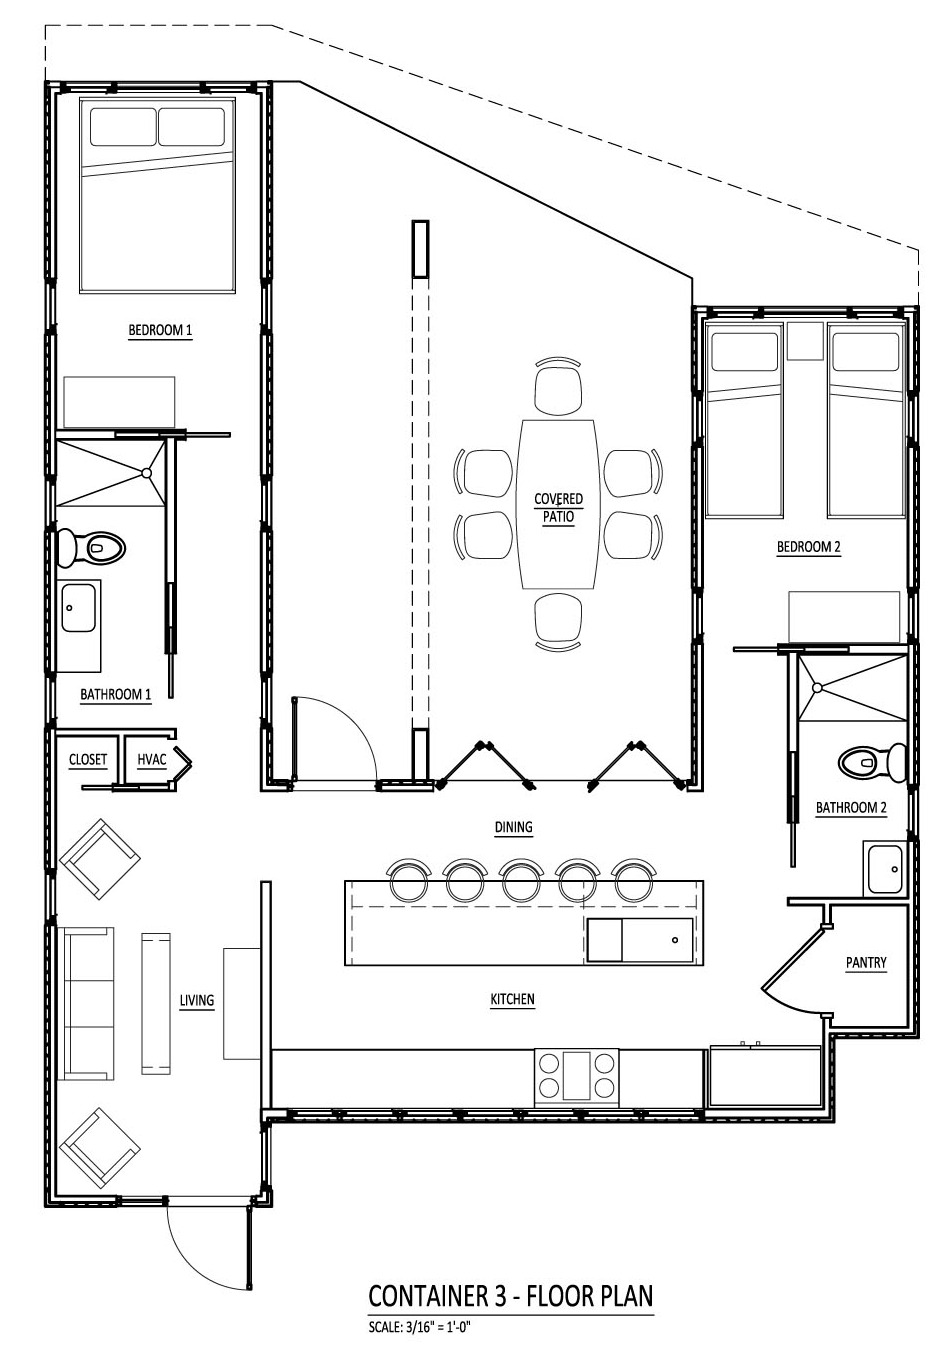 Astounding Design Of The Shipping Container House Plans With Big Kitchen Areas Added With Two Bedroom Areas